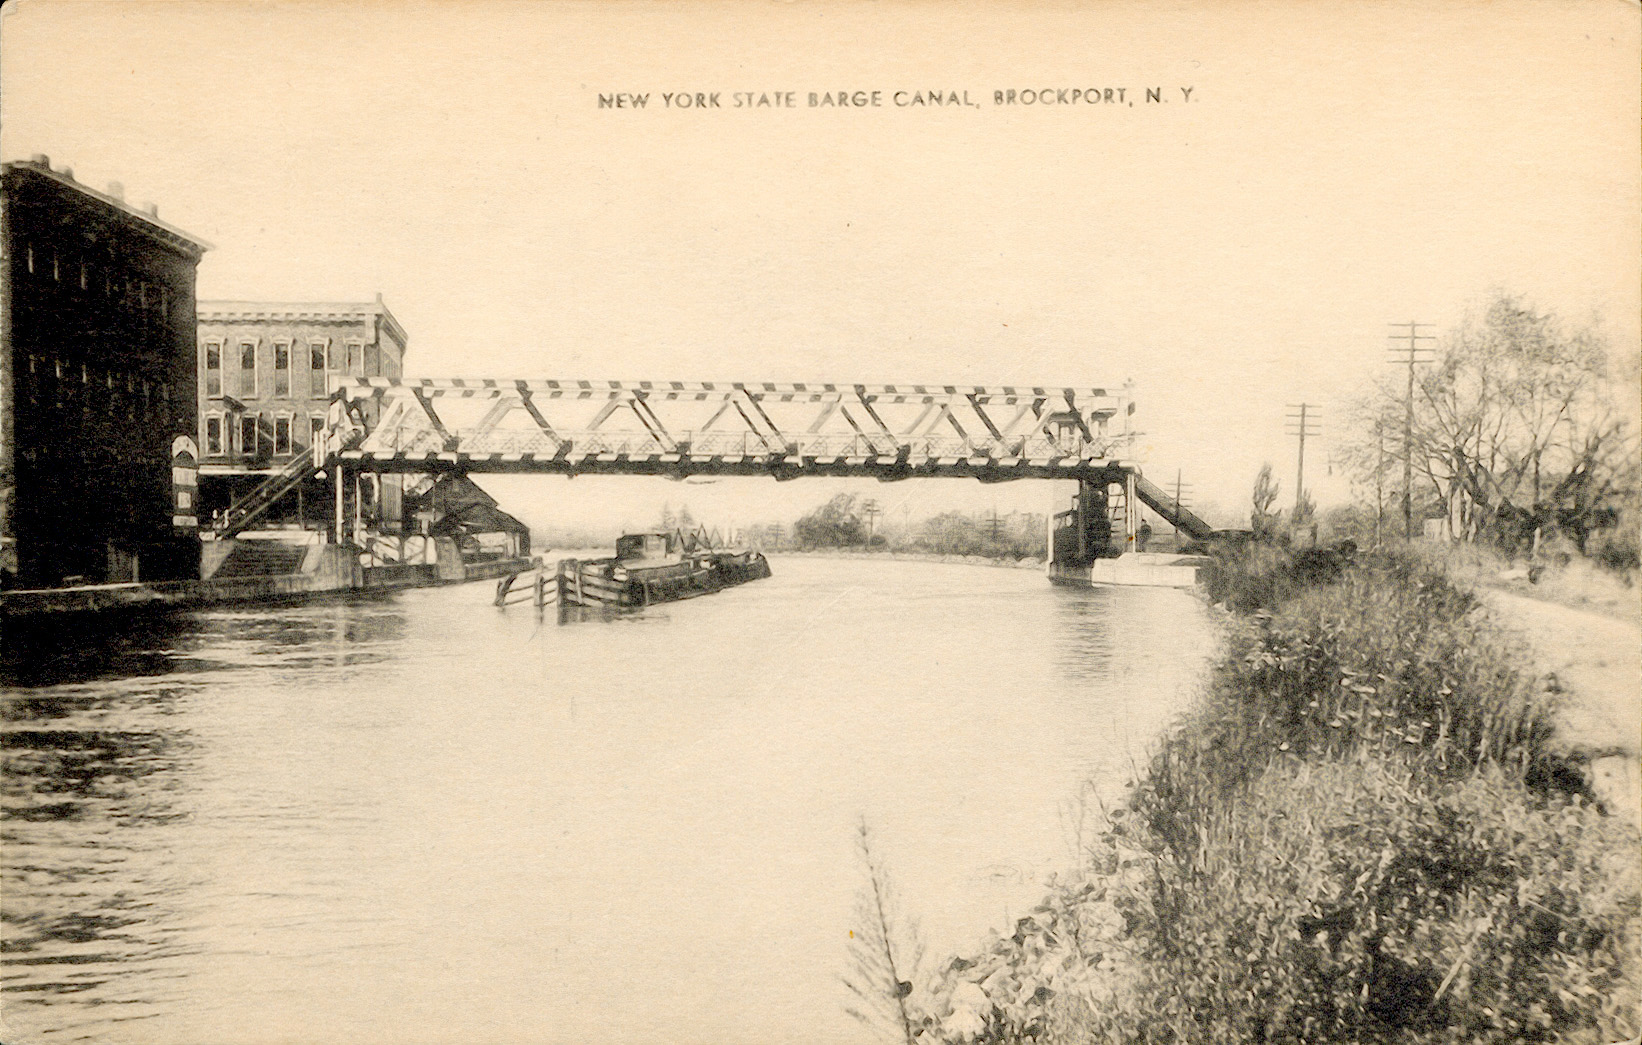 Erie Canal Images - West Section